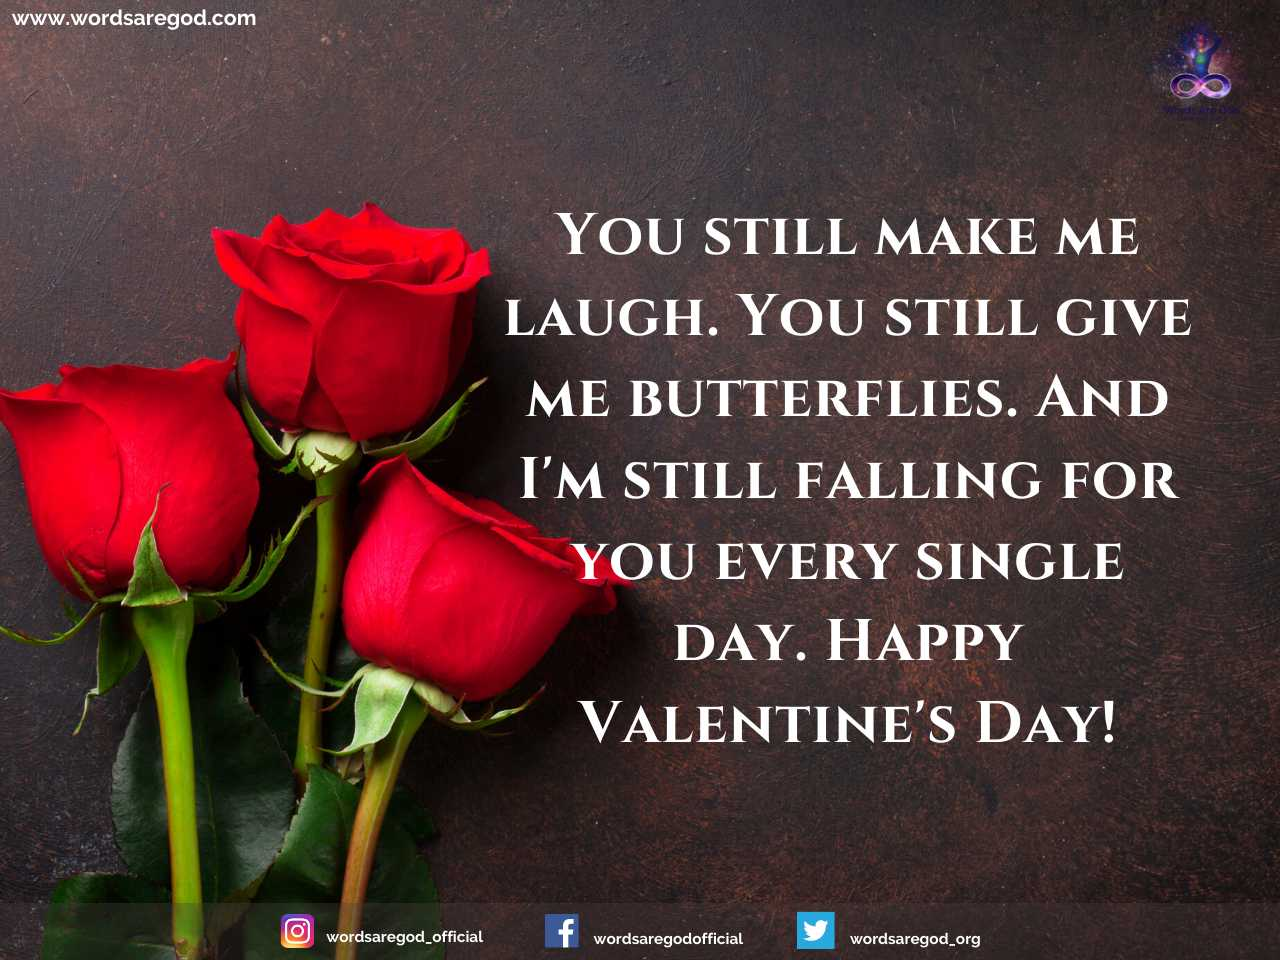 Valentines Day Quotes 2022 Facebook thumbnail